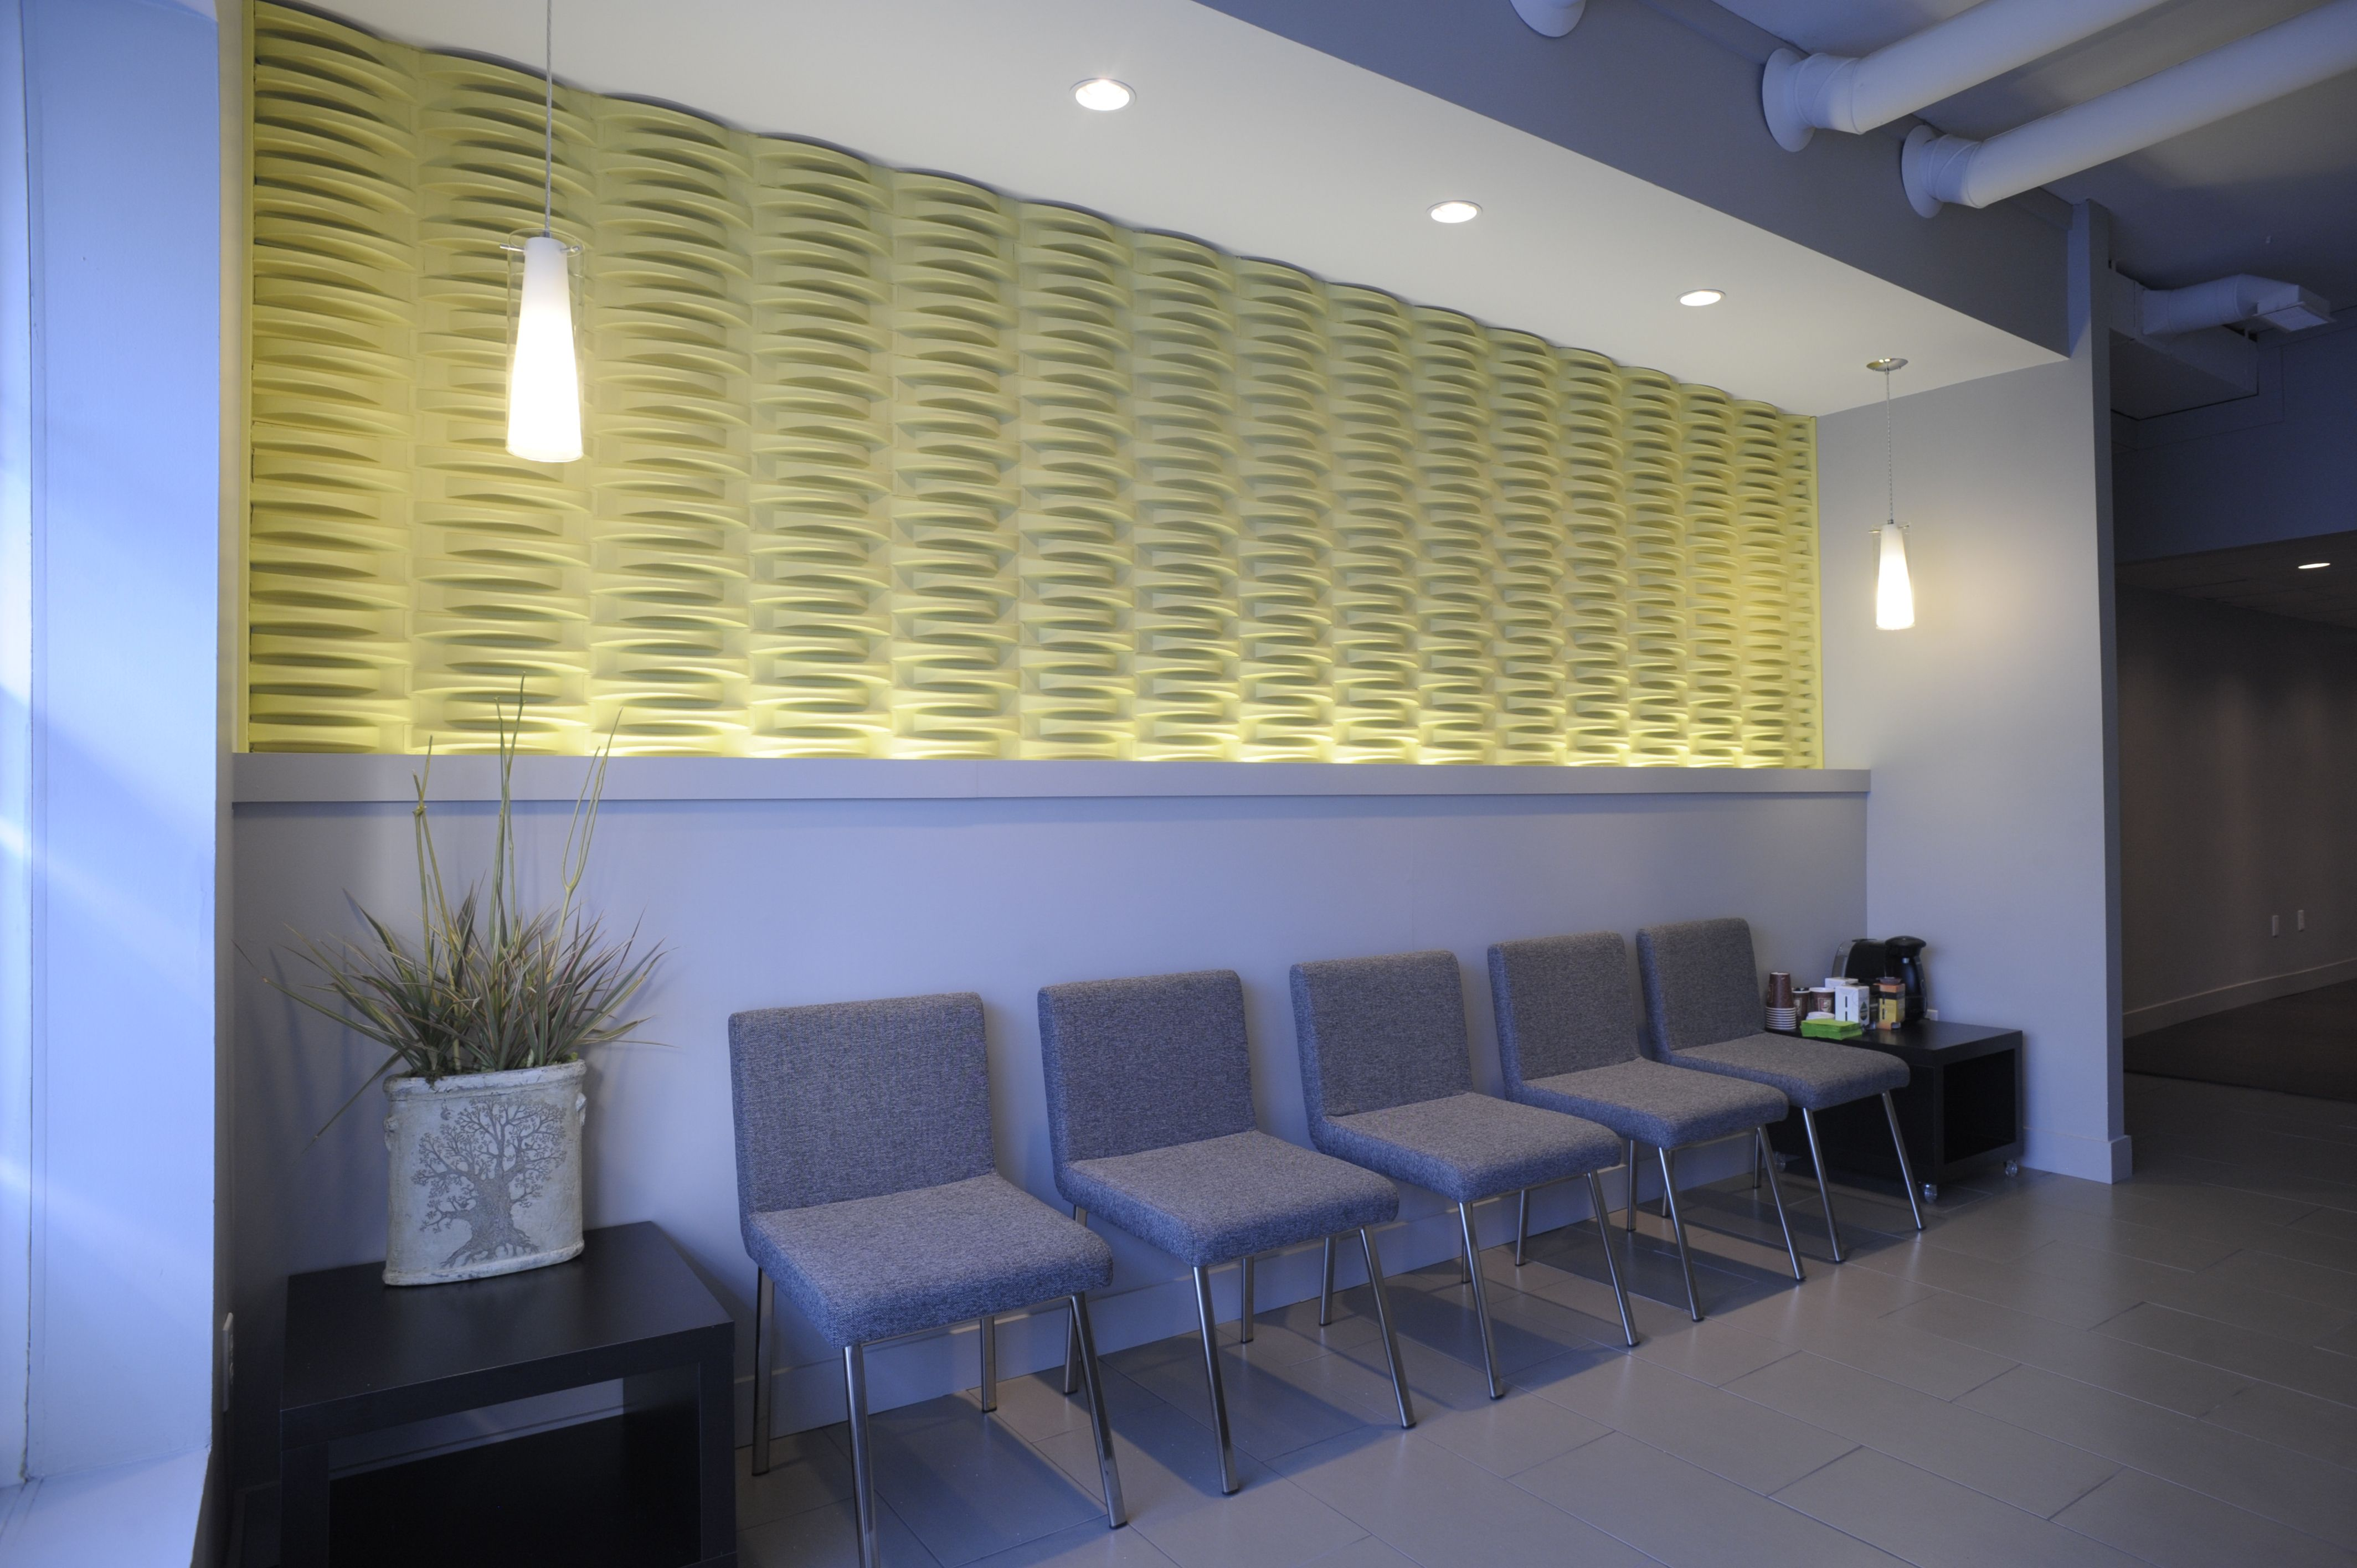 Paperforms 3d Wallpaper Tiles Acoustic Weave Wall Tiles Mio In Use Pinterest Wall